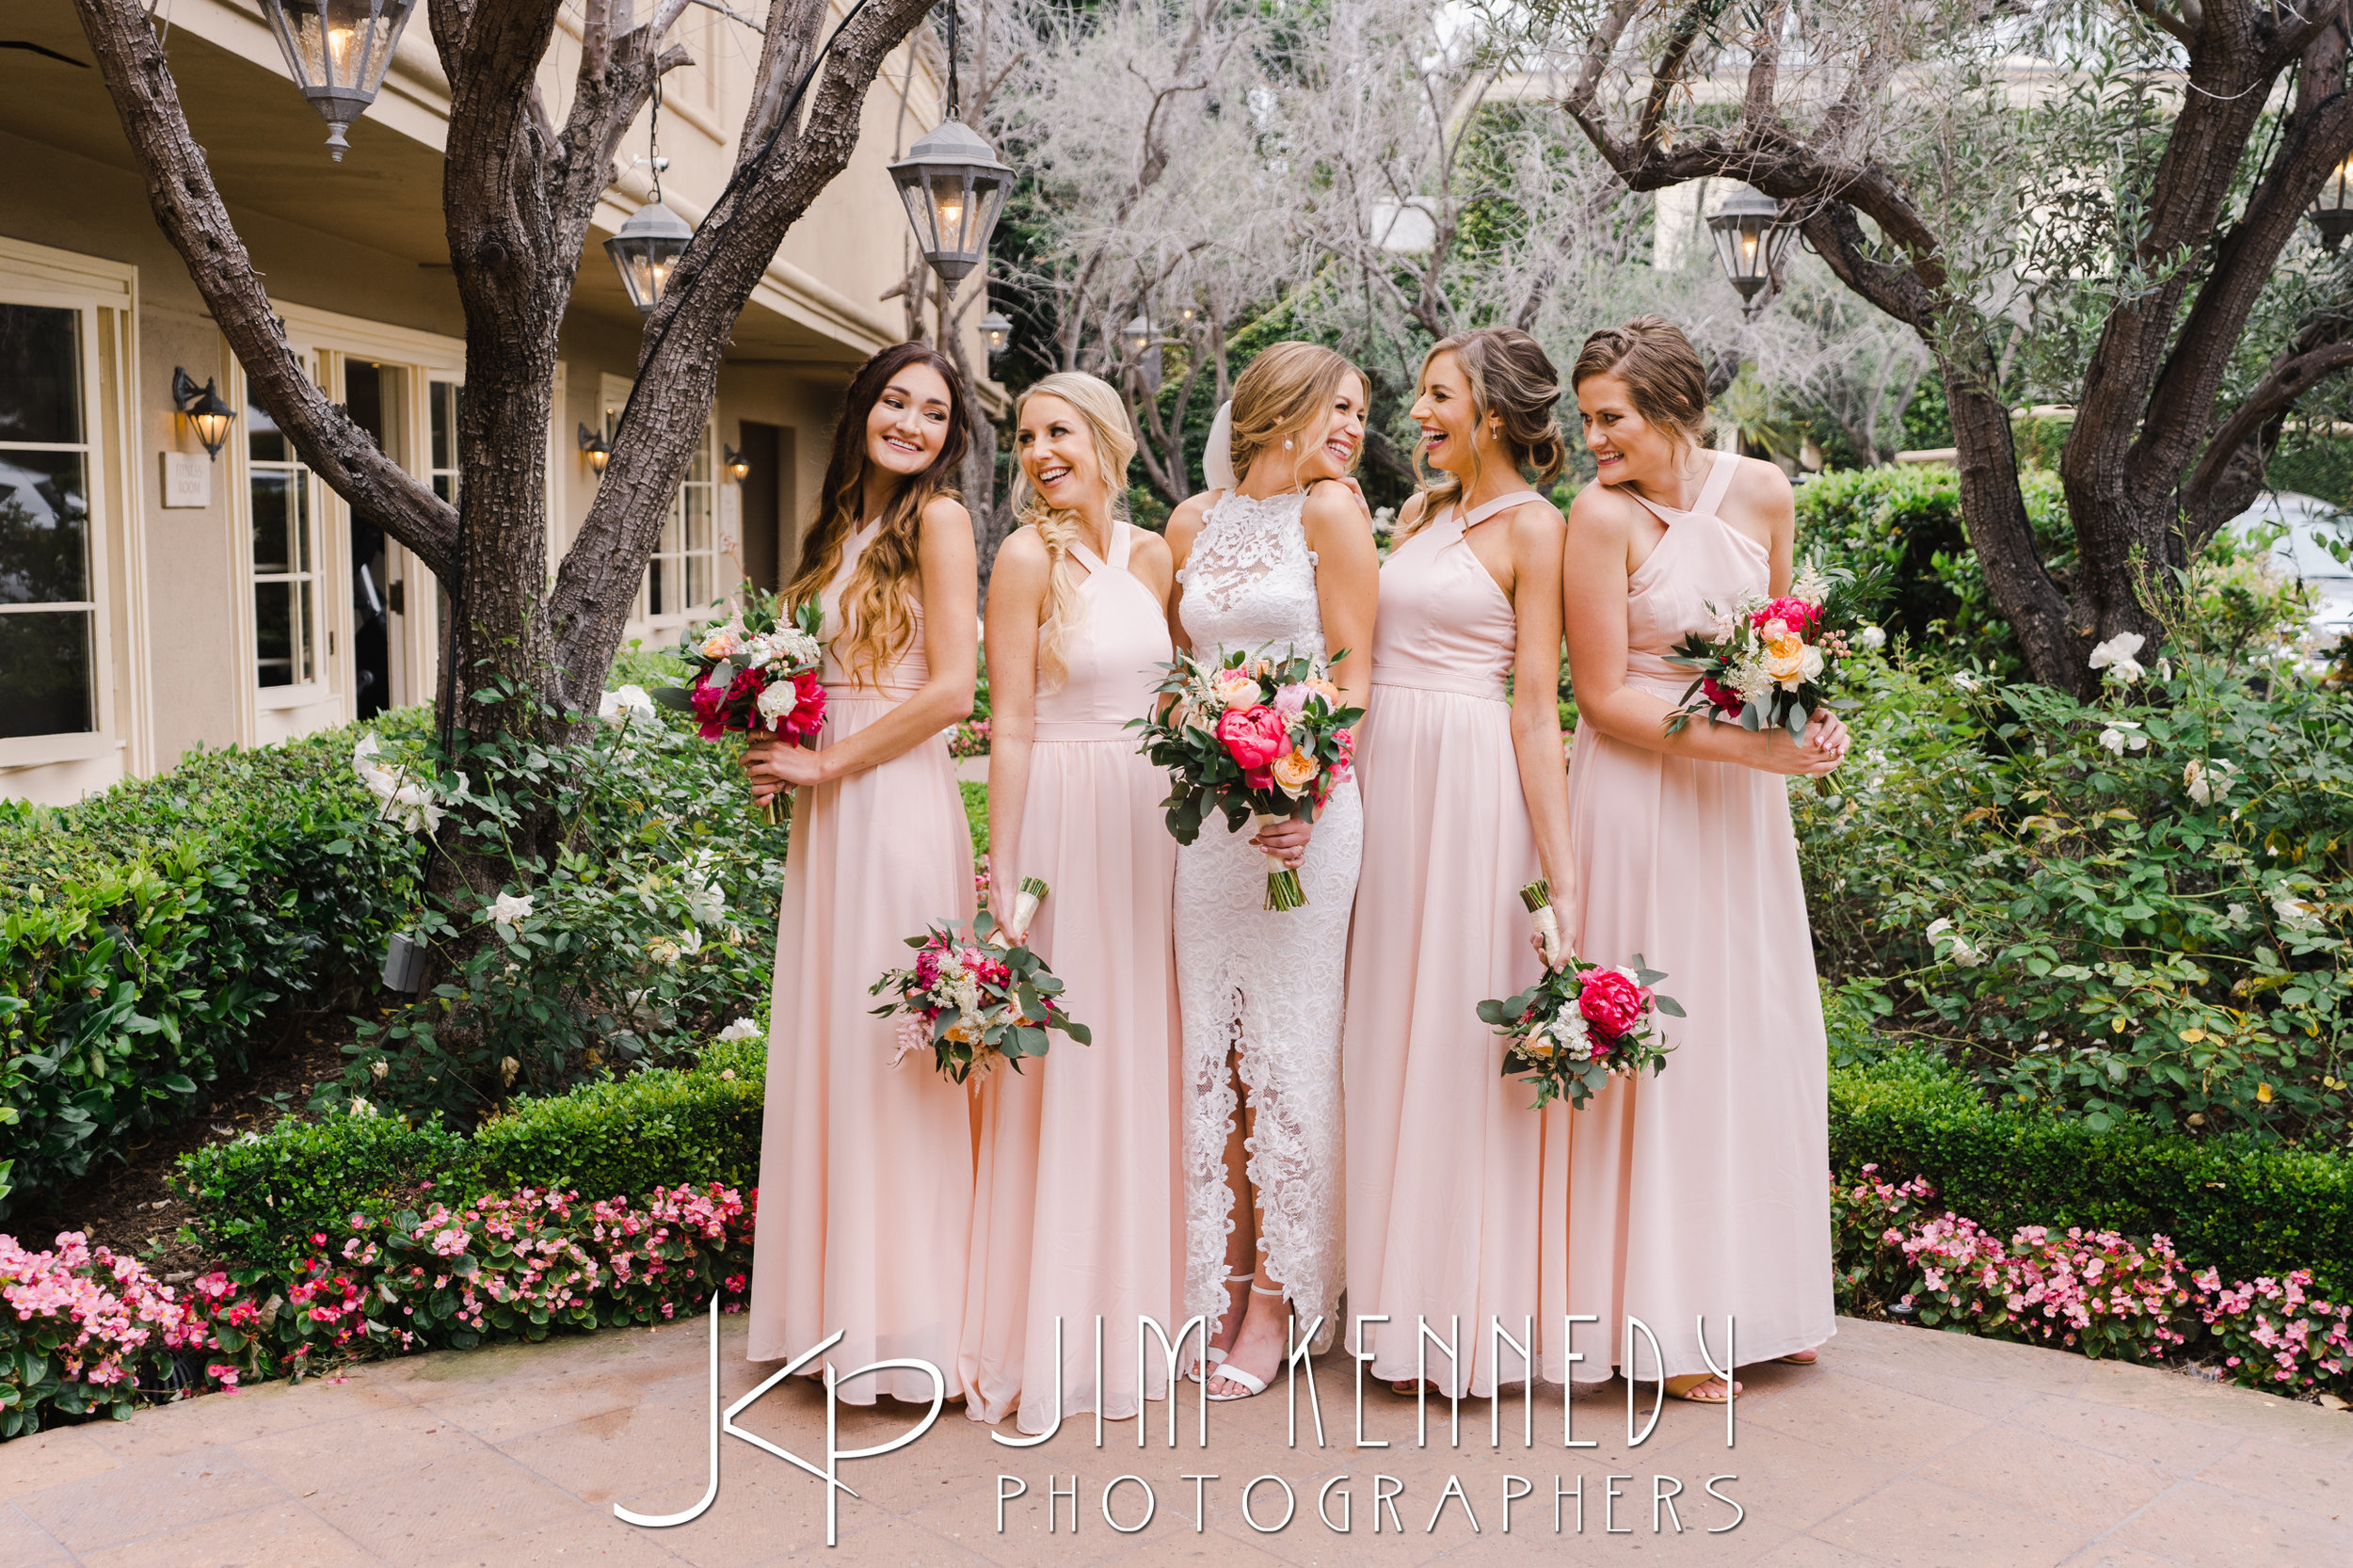 surf-and-sand-wedding-becca-russell__0089.JPG